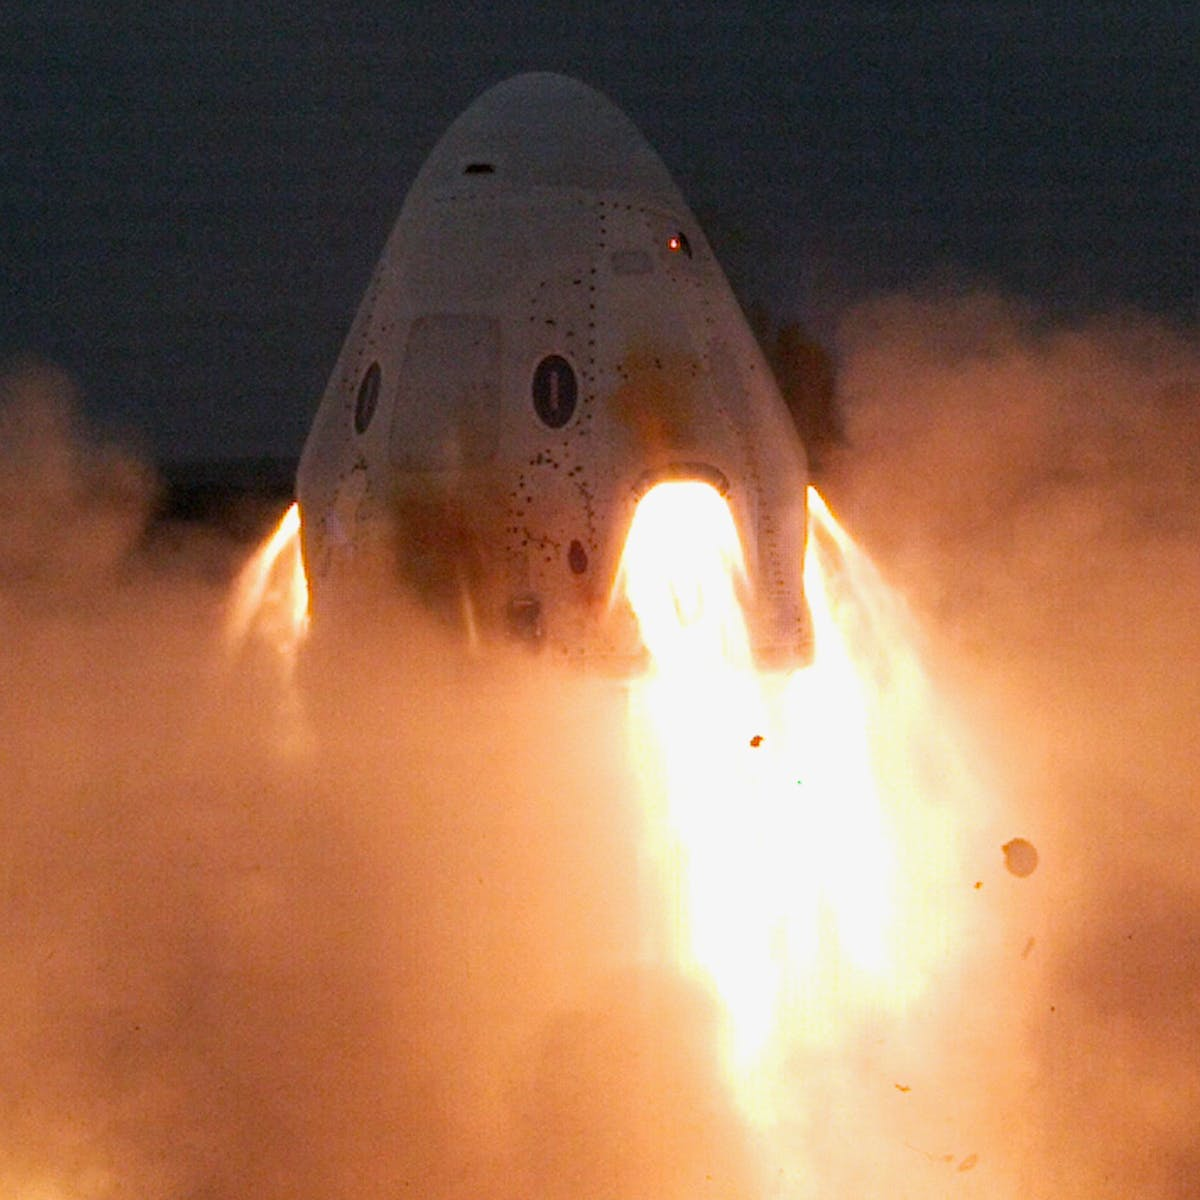 SpaceX's Crew Dragon just overcame a major safety hurdle following redesign